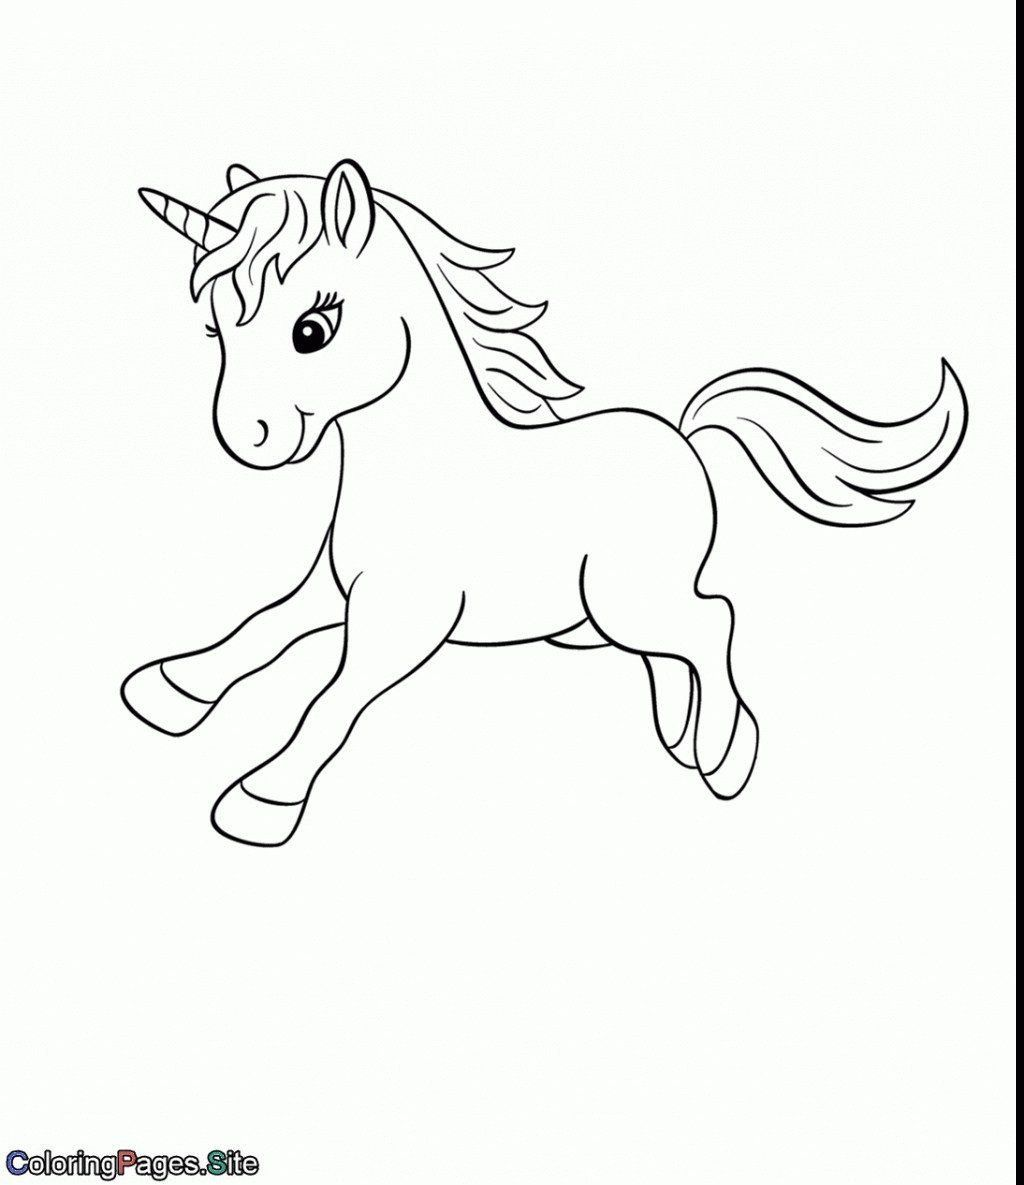 Unicorn Coloring Pages Printable Fresh Coloring Pages Printable Unicorn Coloring Pages Games With Unicorn Coloring Pages Baby Unicorn Cute Coloring Pages